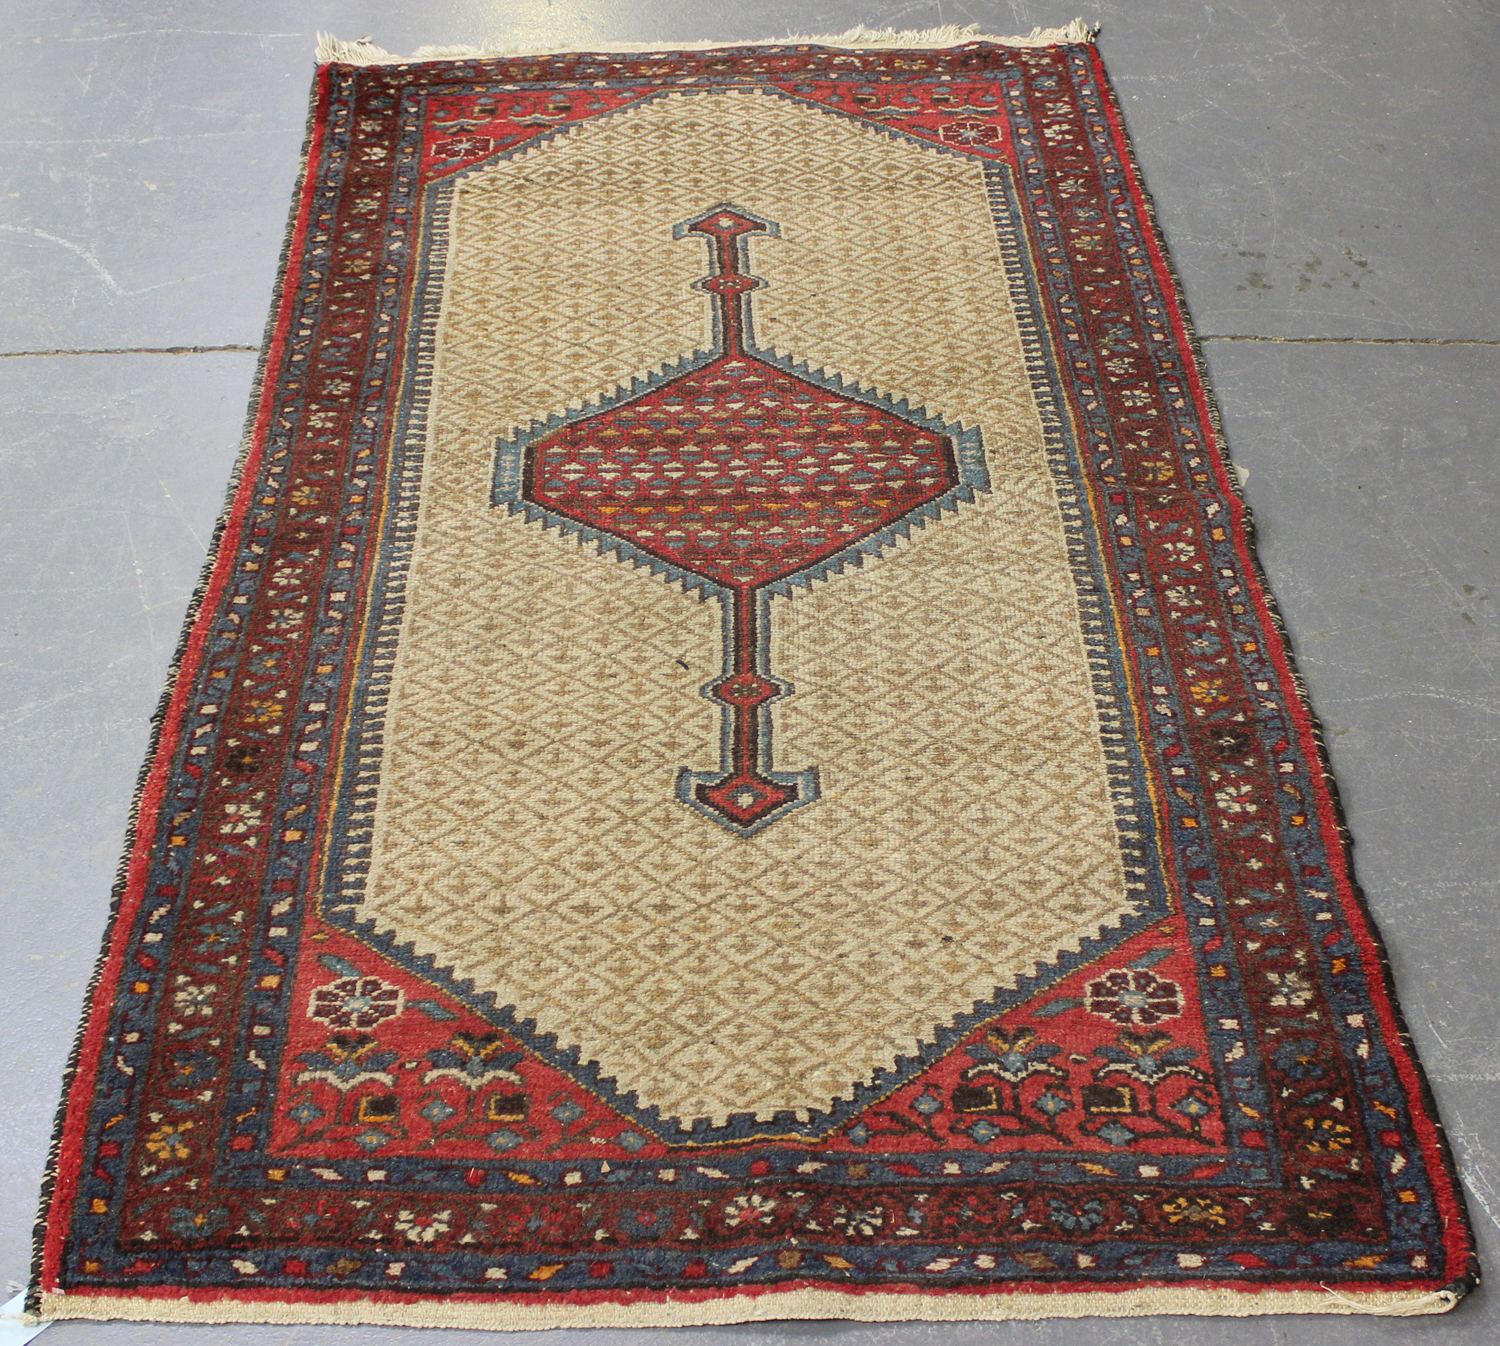 Lot 2909 - A Hamadan rug, North-west Persia, early 20th century, the ivory lattice field with a pole medallion,